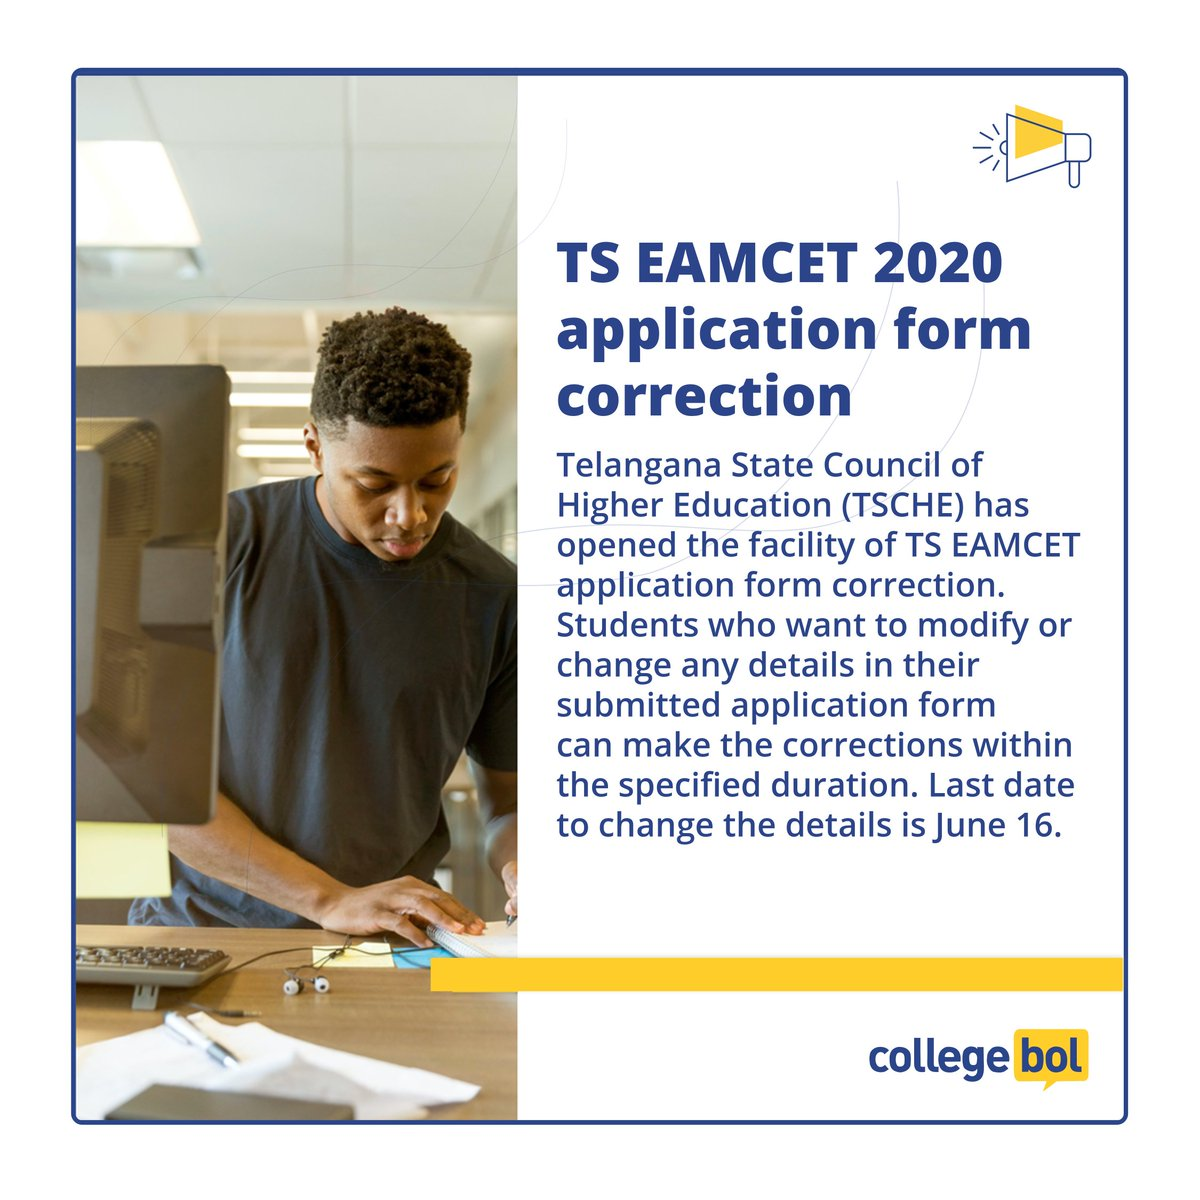 Exam Alert: Apply Now! TS EAMCET 2020 application form correction facility starts.  The facility is available online on the official website http://eamcet.tsche.ac.in  #studentlife #studytips #college #collegelife #schoollife #ss #ExamAlert #tseamcet #OnlinePreparation #collegebolpic.twitter.com/47vhbmWDoL